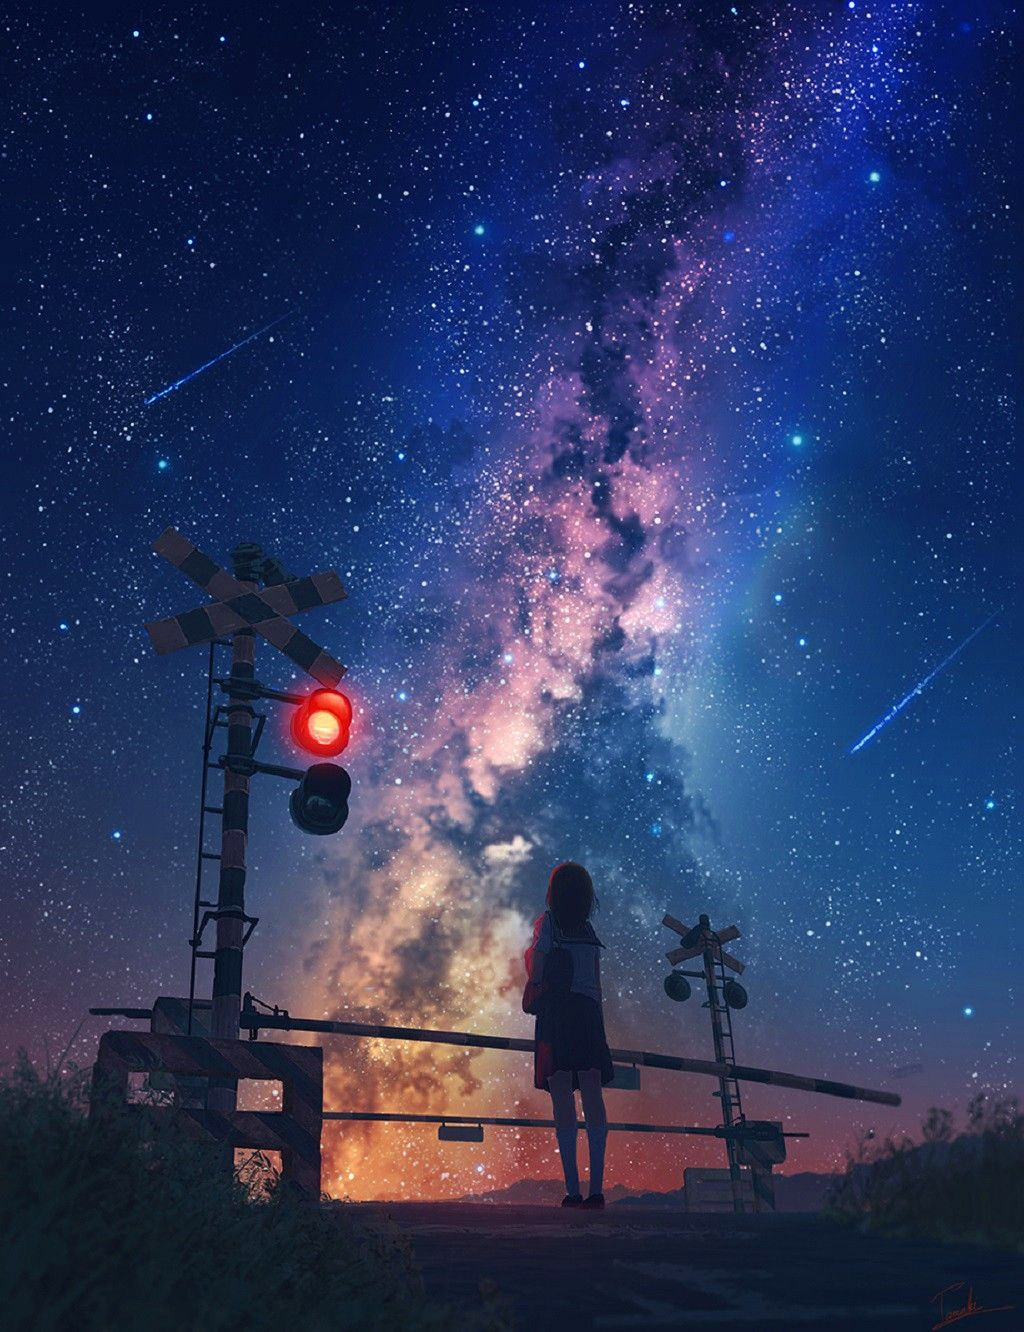 Anime Galaxy Wallpapers Top Free Anime Galaxy Backgrounds Wallpaperaccess